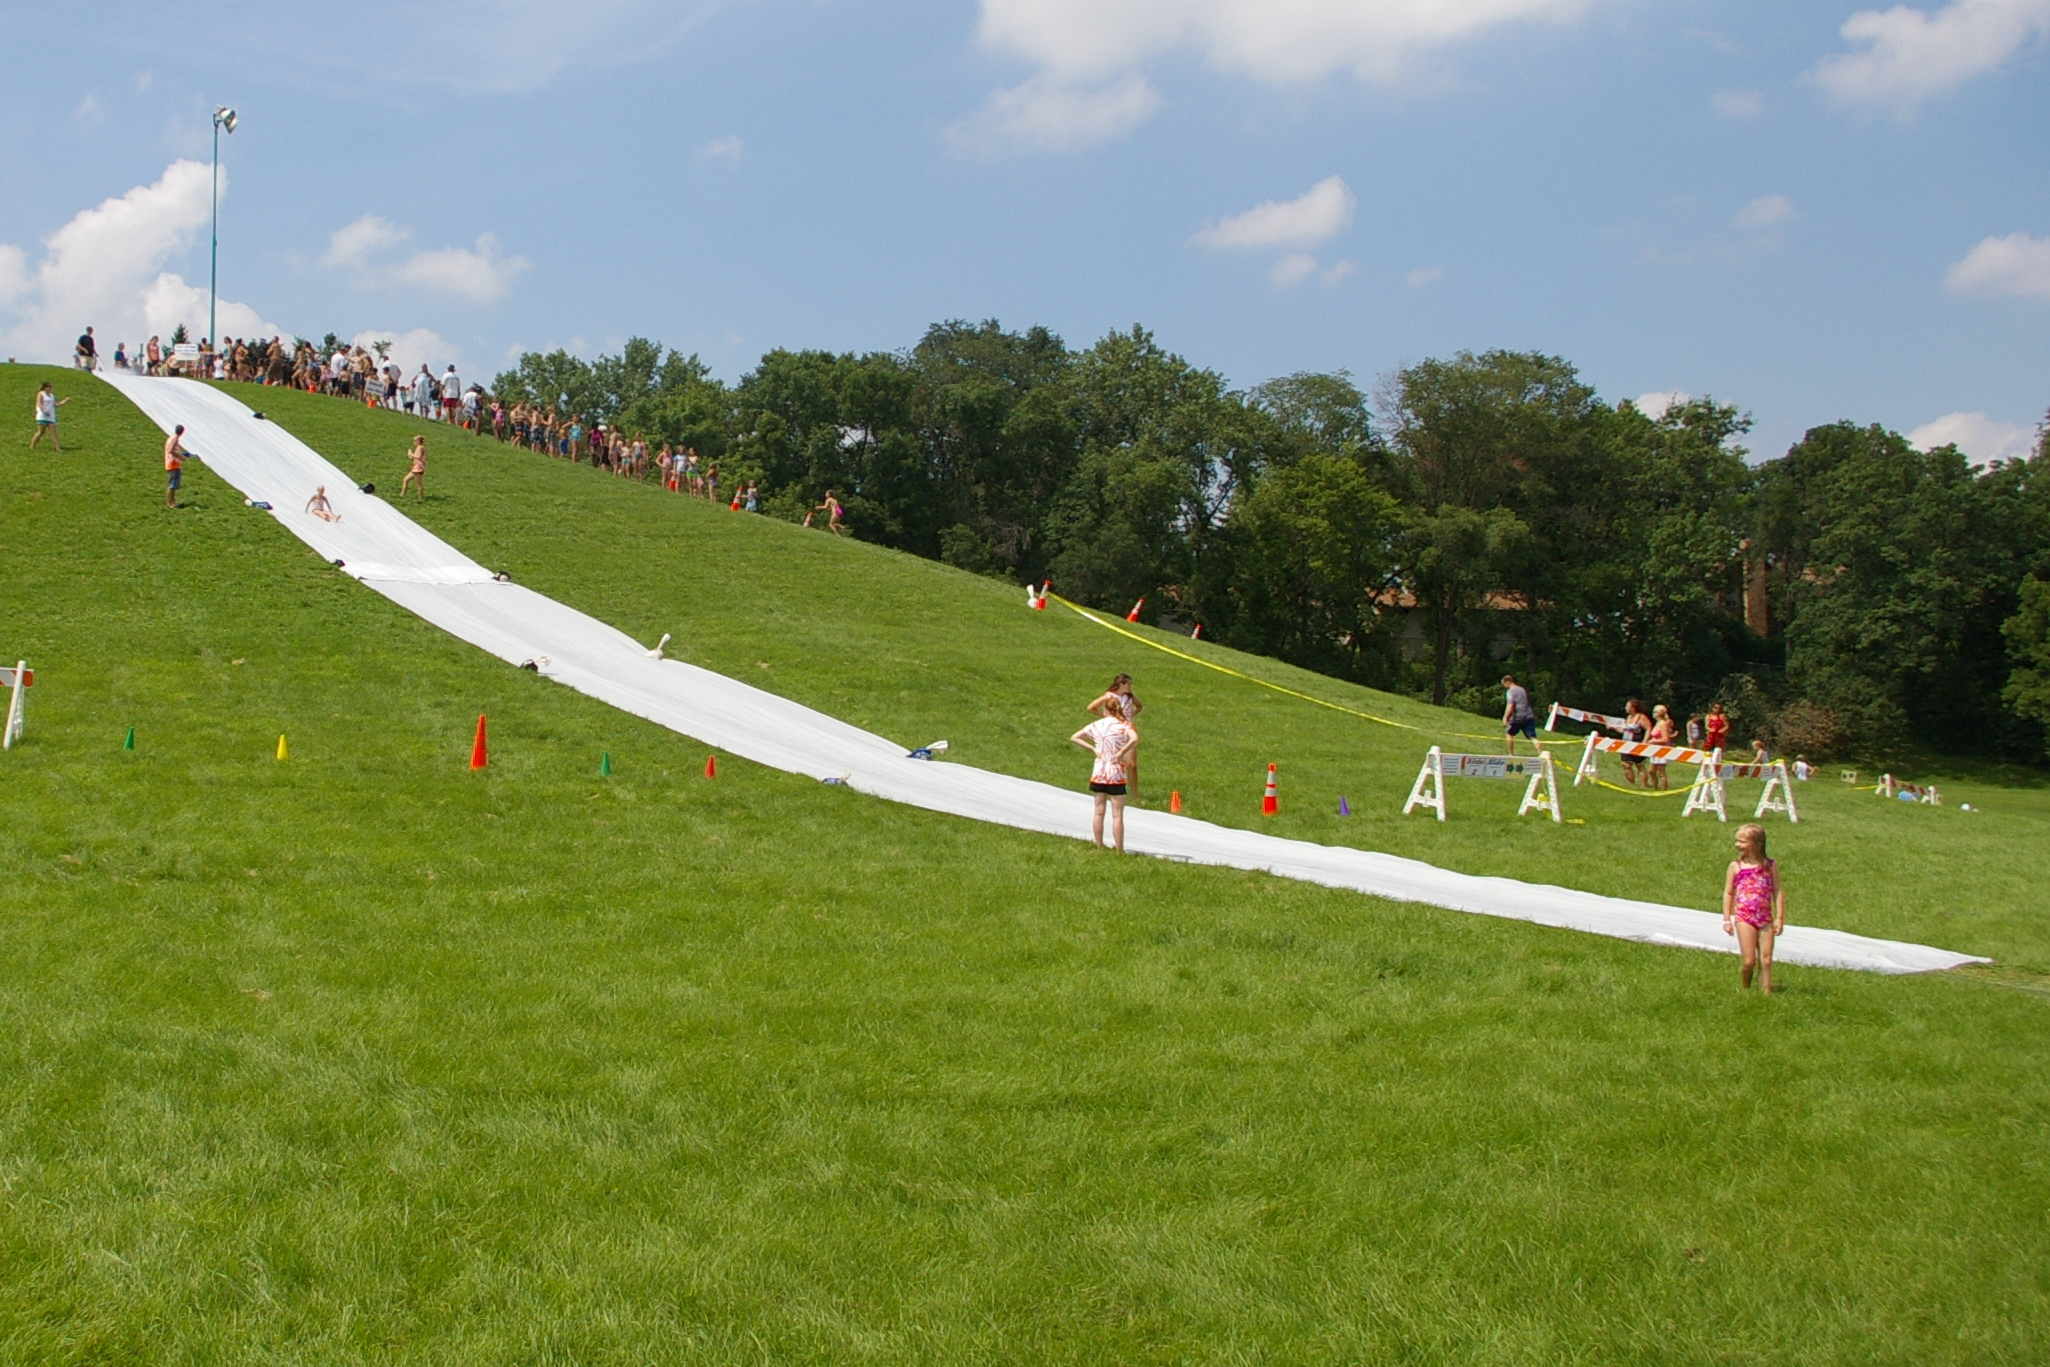 Pin by garry labelle on grandpa camp pinterest - The giant slide apartament ...